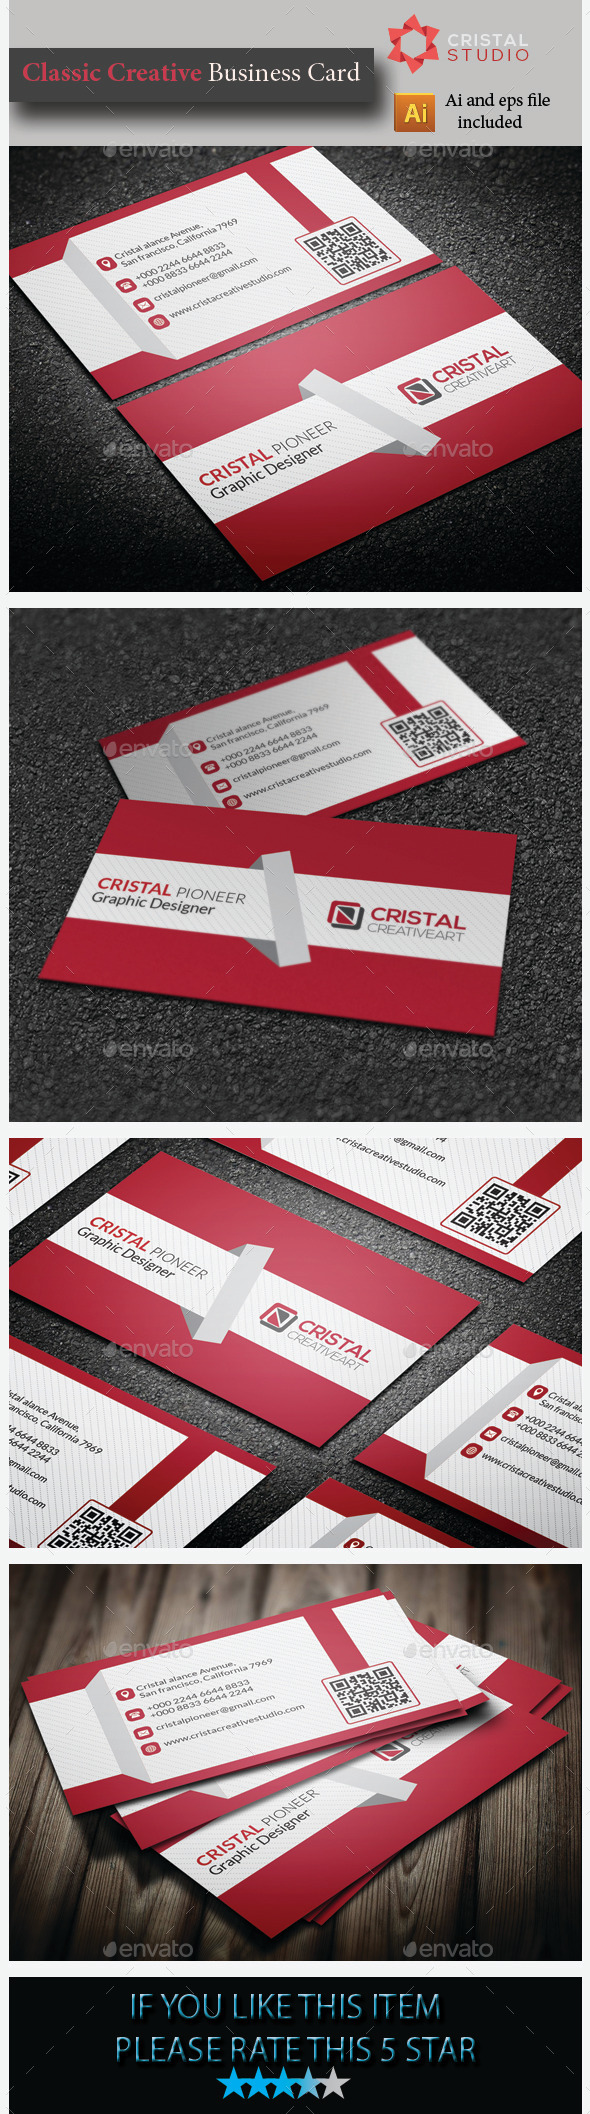 GraphicRiver Classic Creative Business Card 8989880